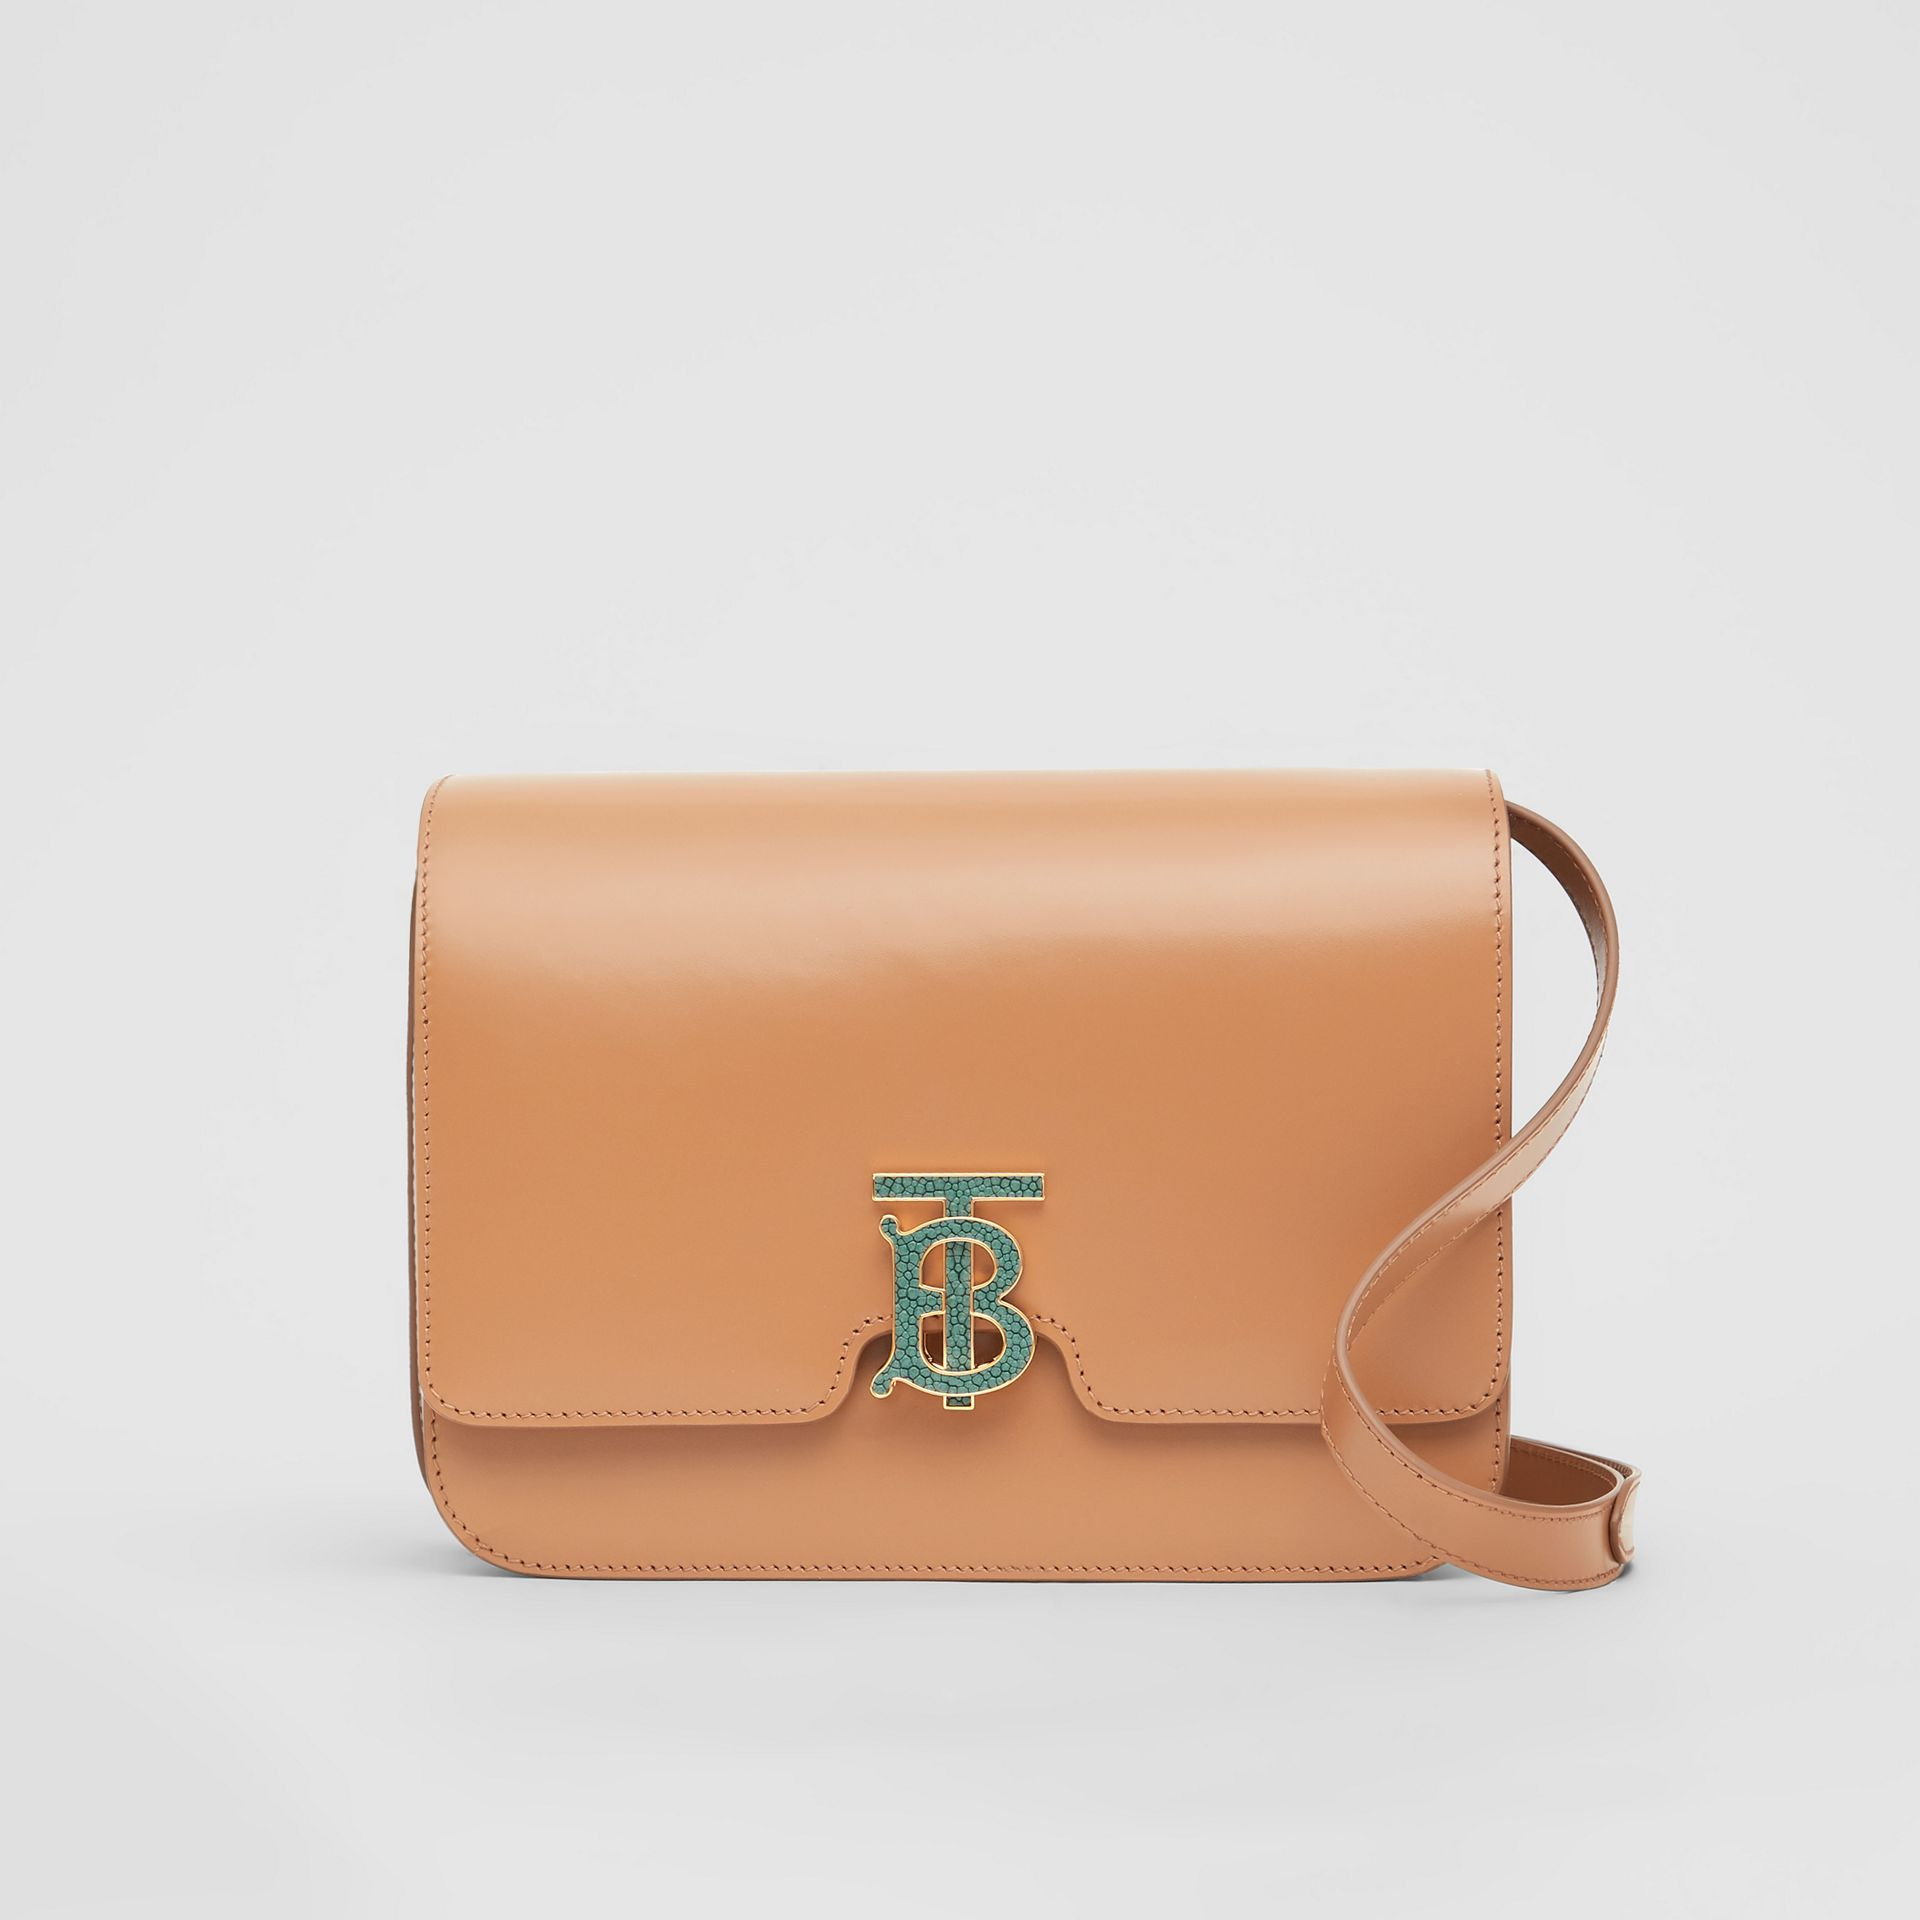 Medium Leather TB Bag in Flaxseed - Women | Burberry - gallery image 0